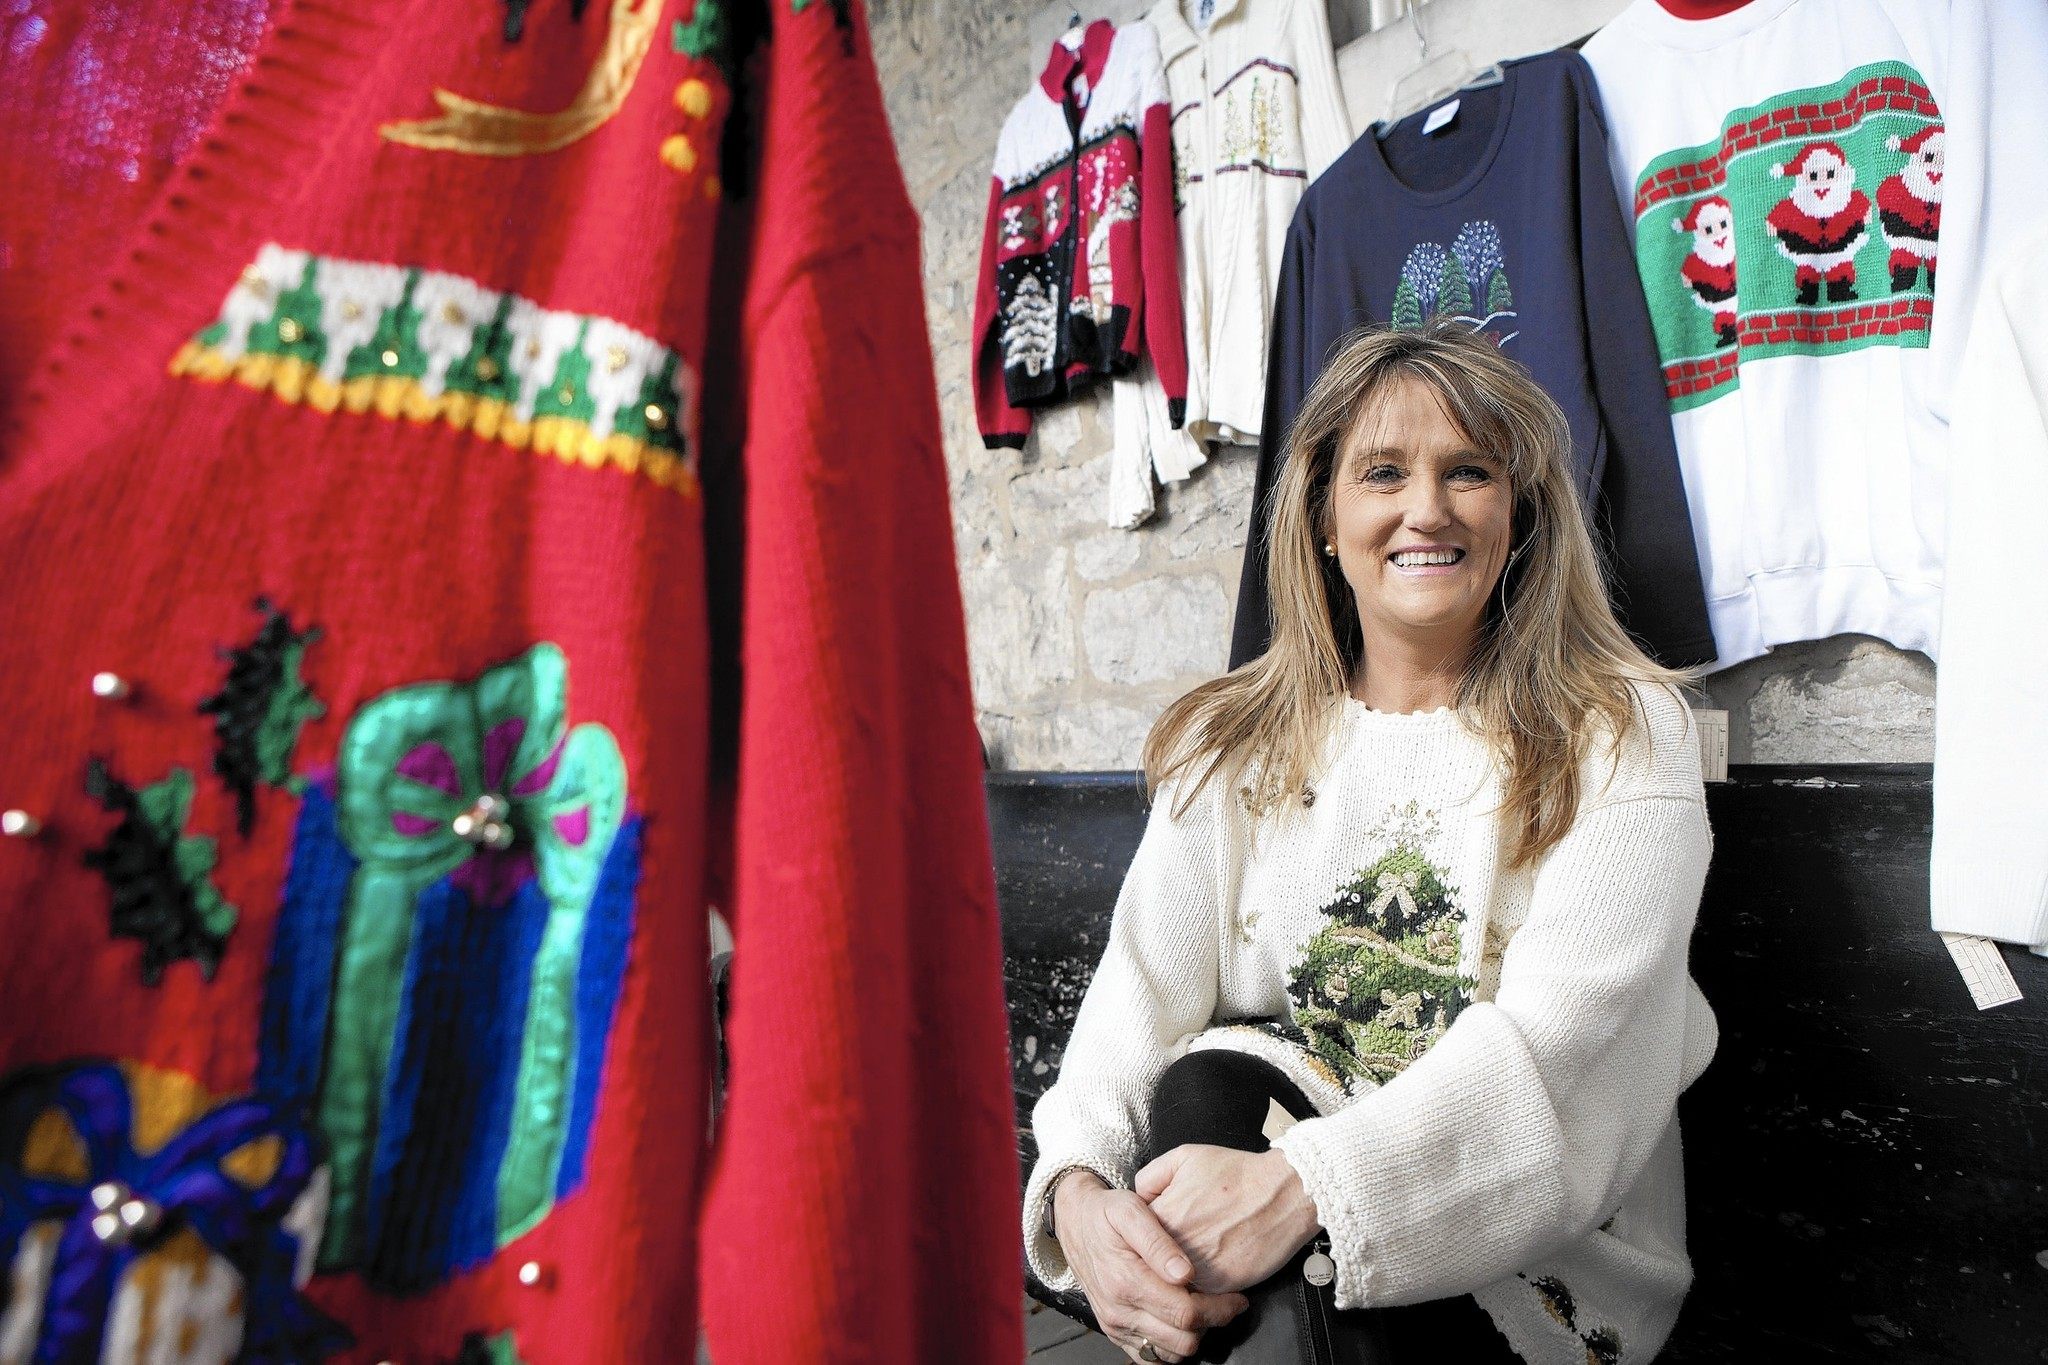 Towson adds ugly sweaters to its holiday fashion - Baltimore Sun